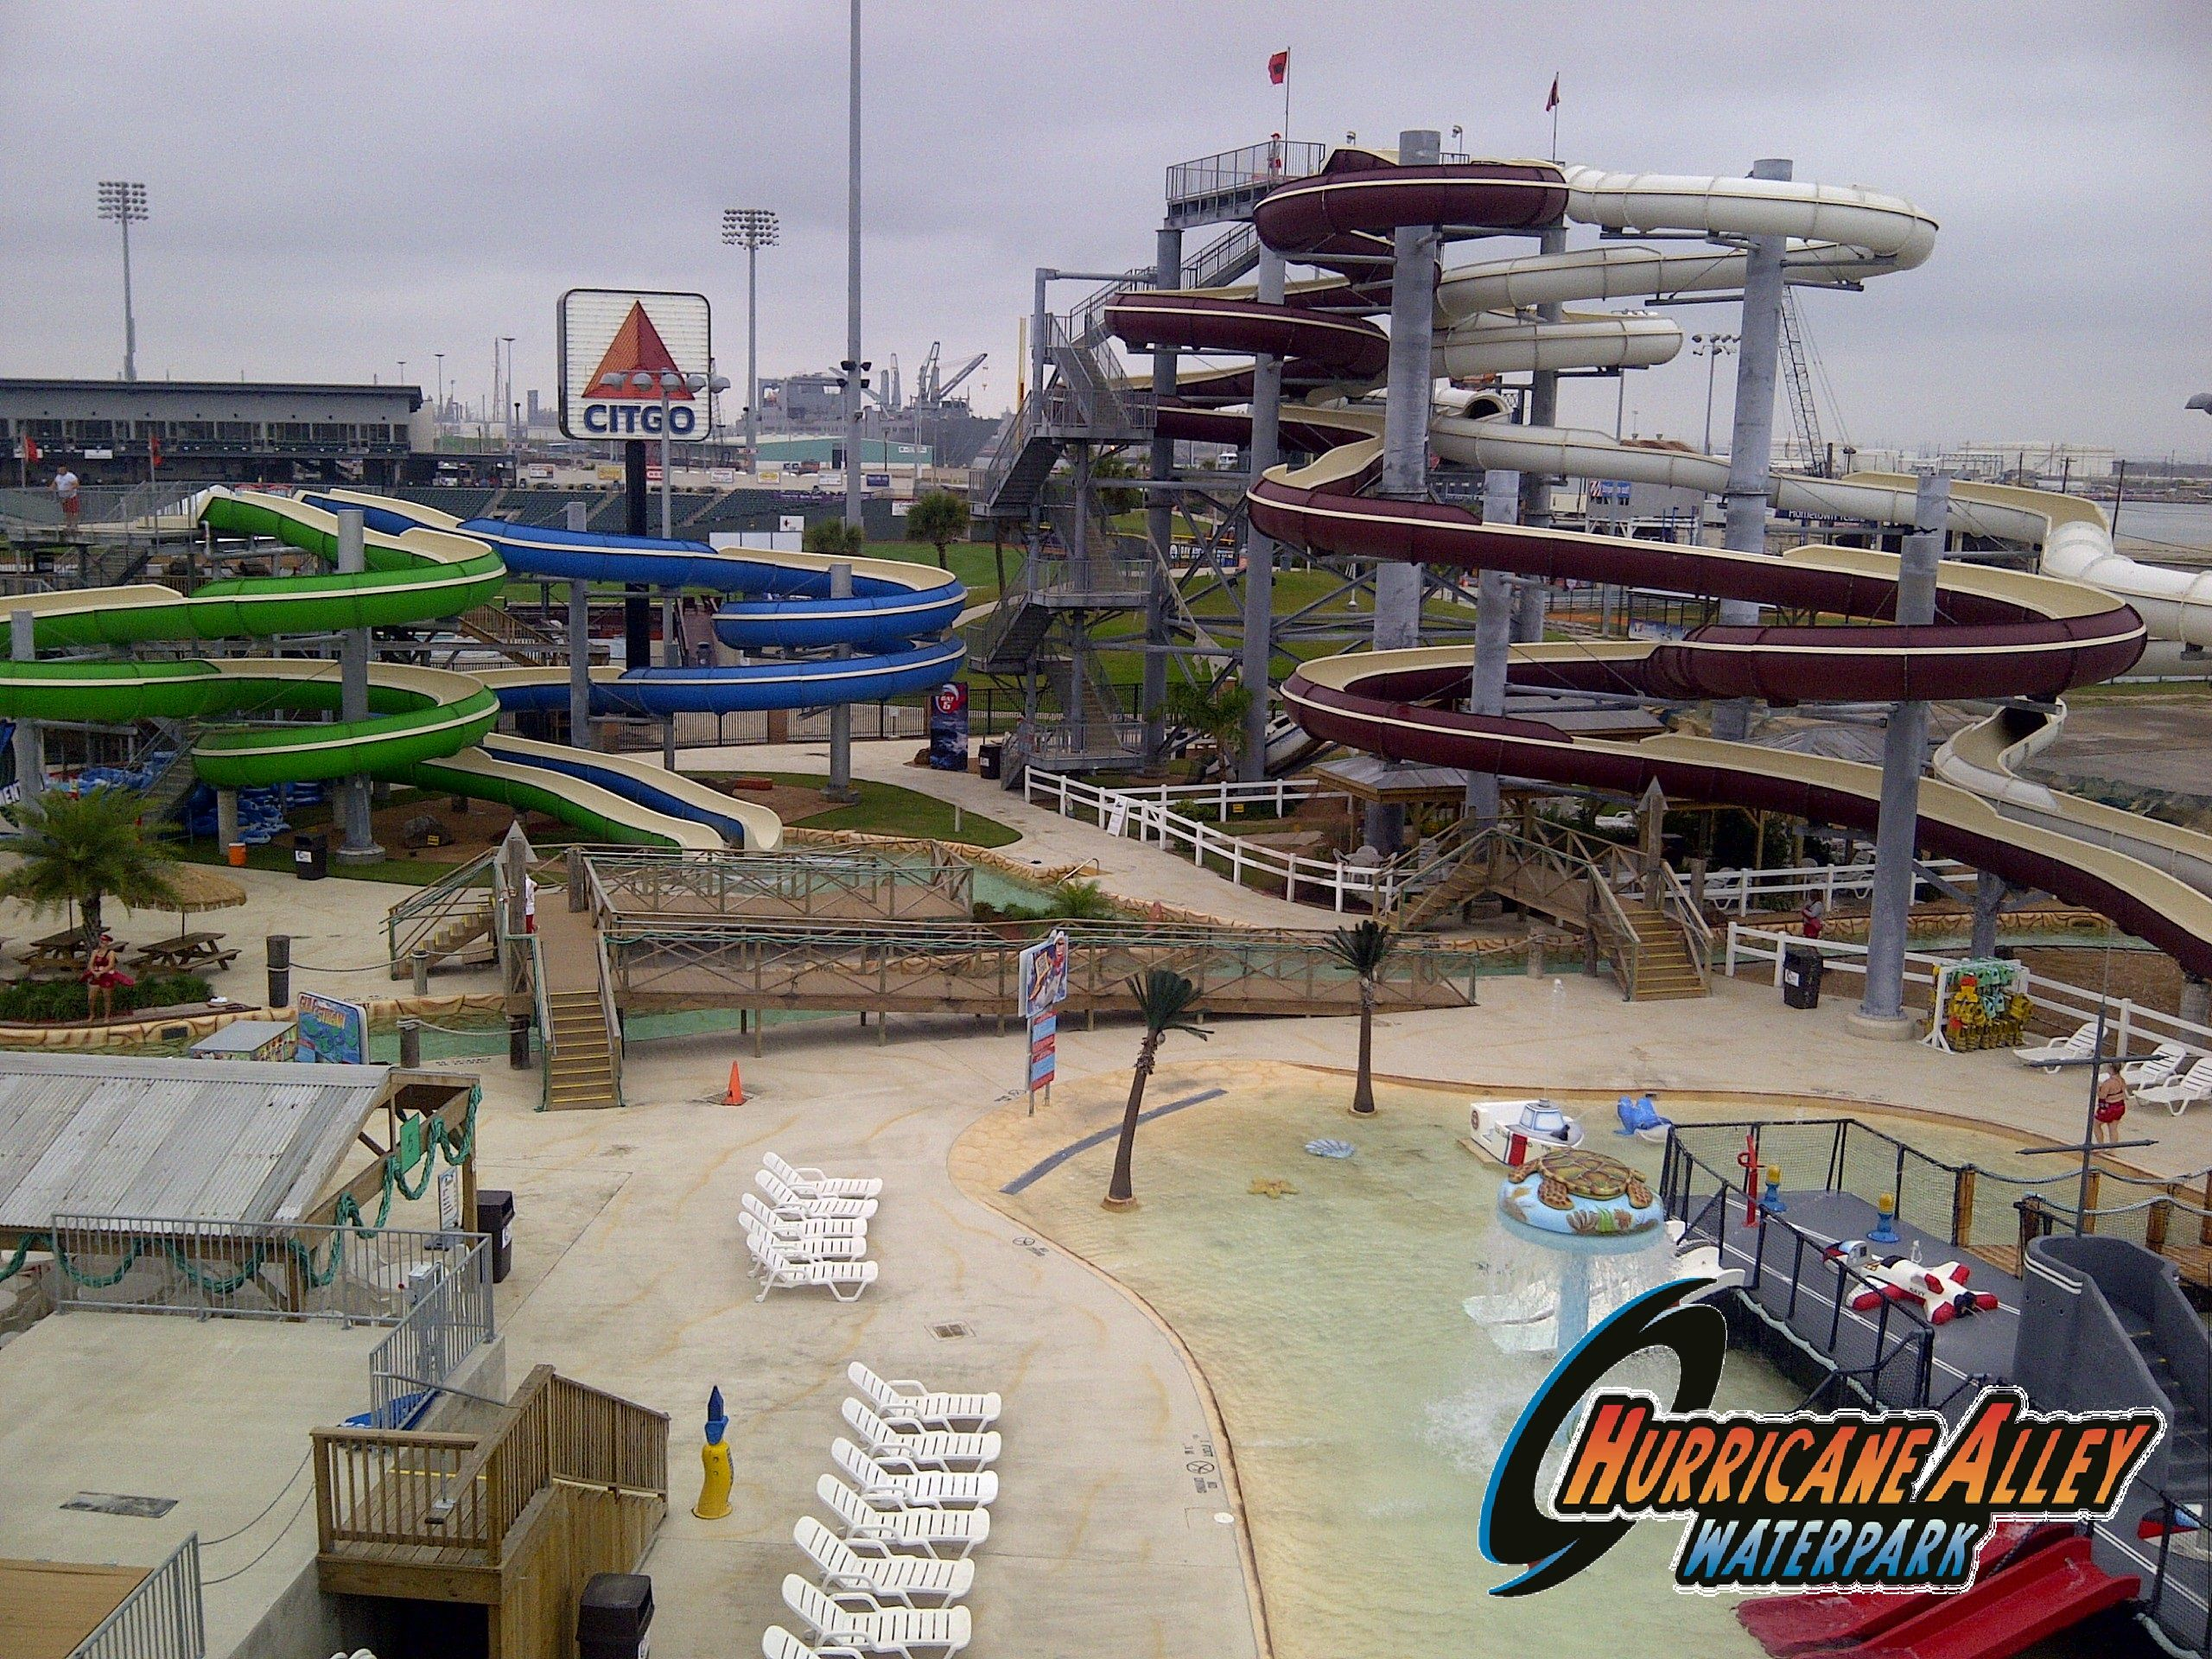 Lounge And Enjoy The Sun While Your Kids Play Aboard Uss Dusty Hacctx Hurricane Alley Waterpark Waterpark Water Park Enjoying The Sun Kids Playing